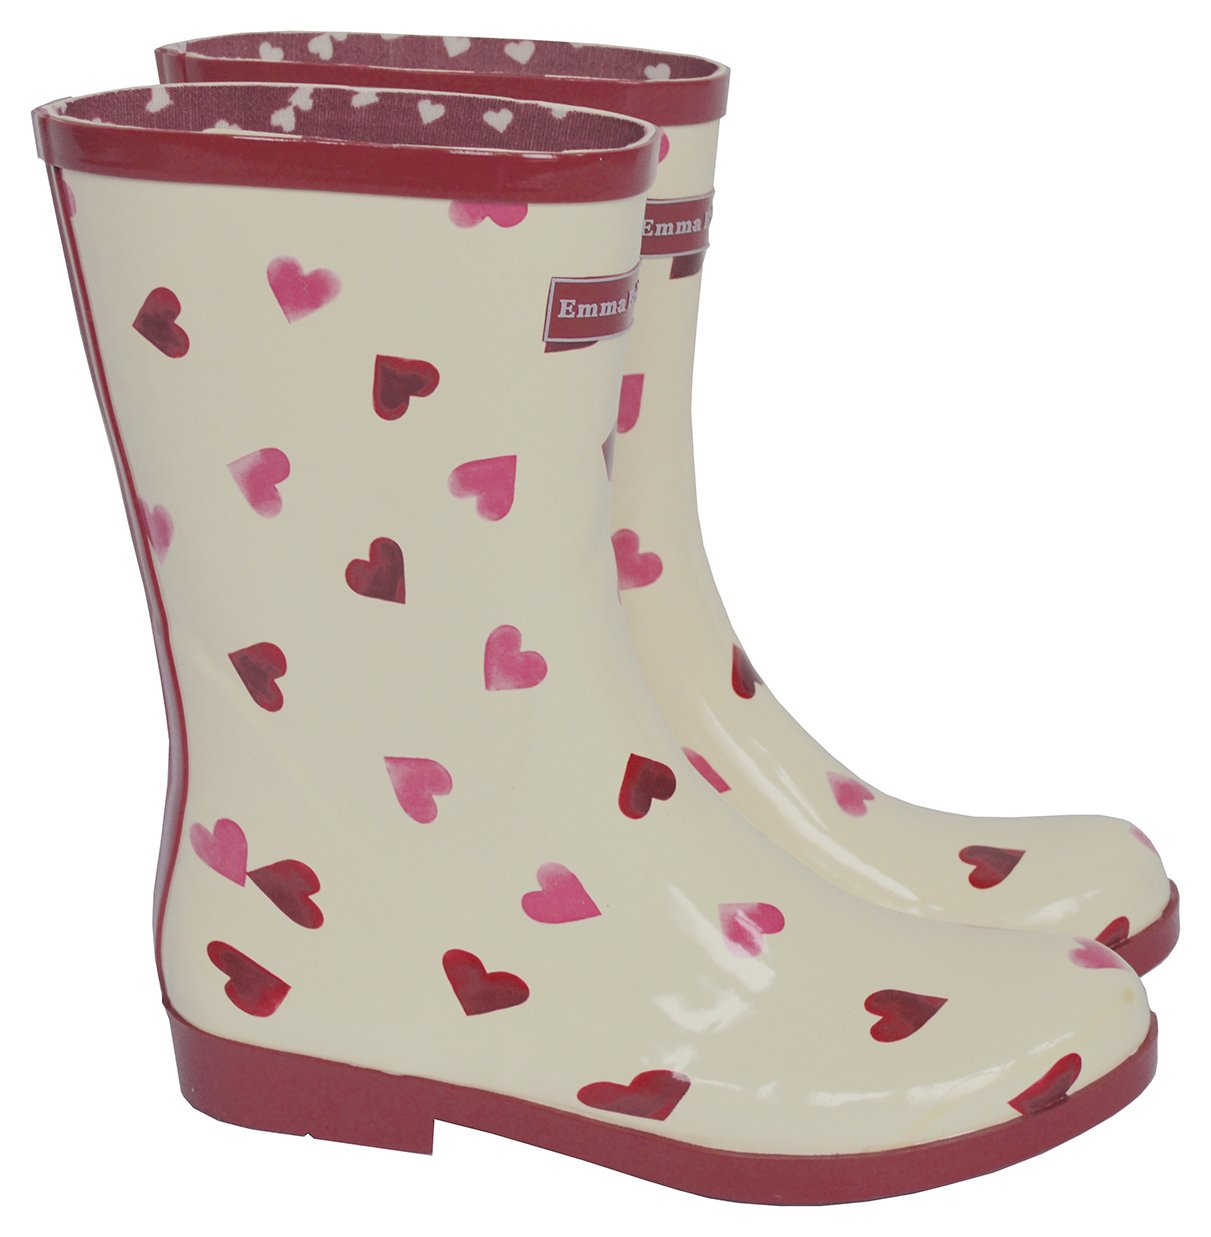 Image of Emma Bridgewater - Womens - Short Heart Wellies - Size 4